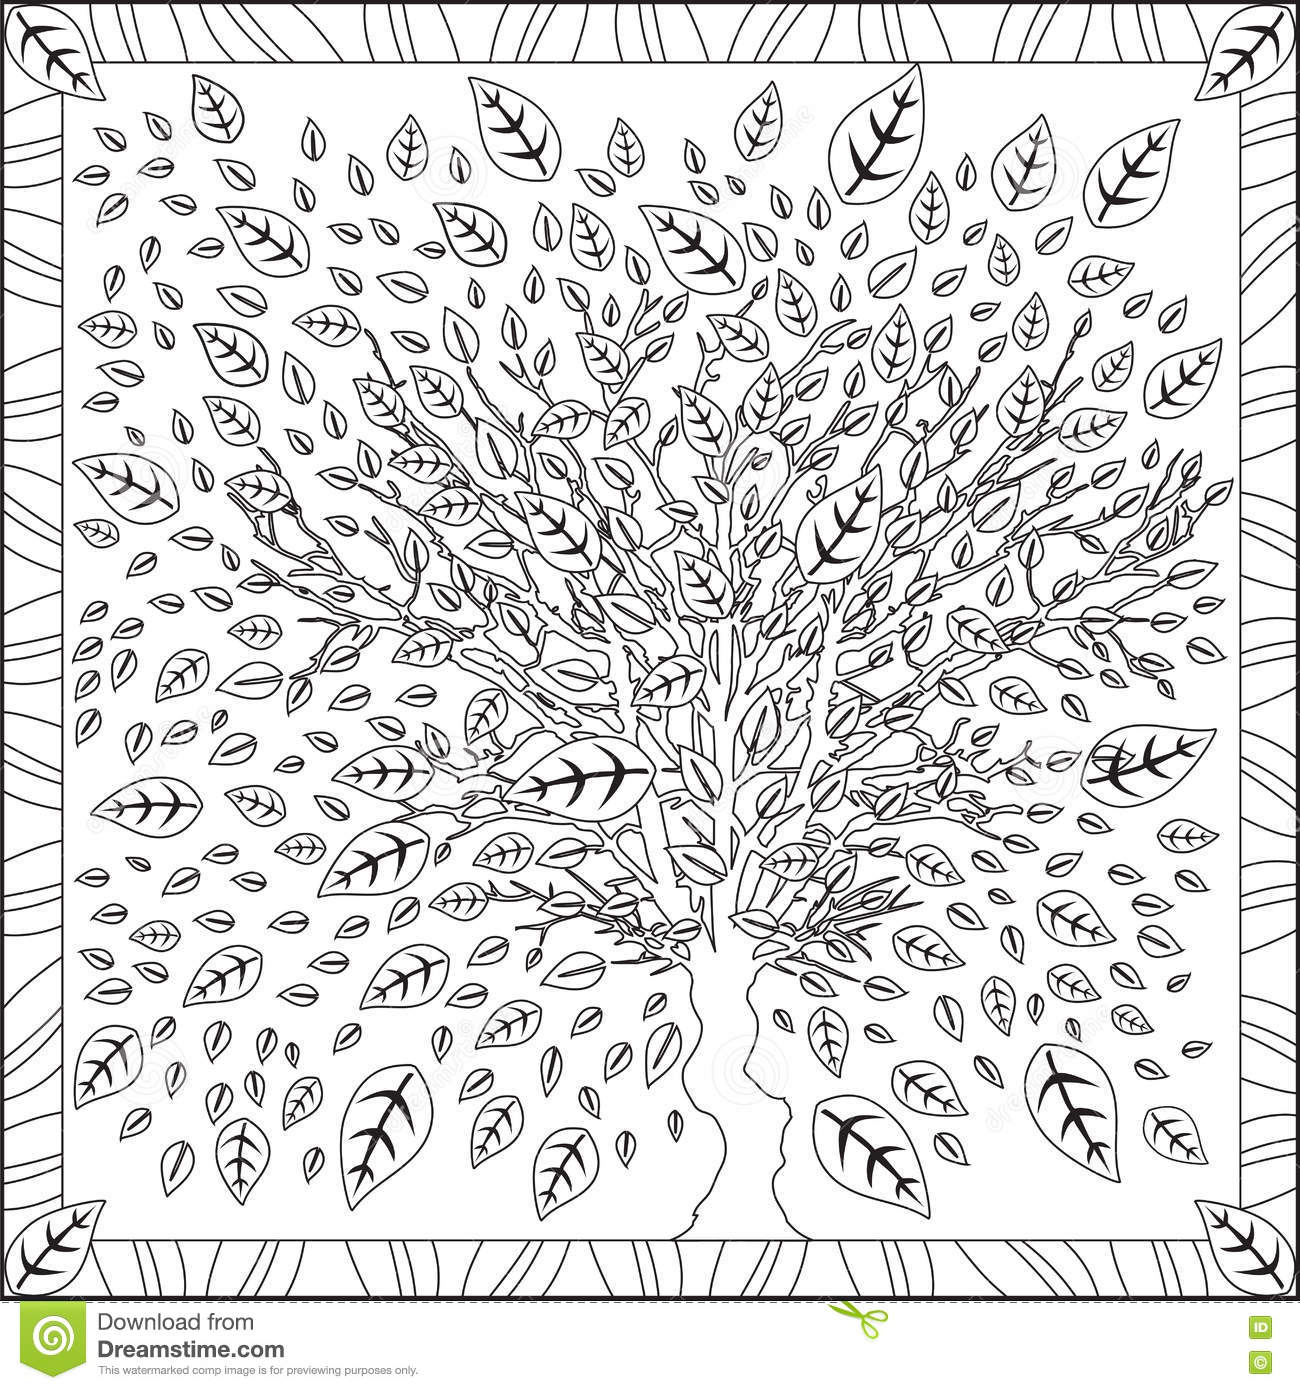 HD wallpapers cherry blossom tree coloring pages tools.czh.pw